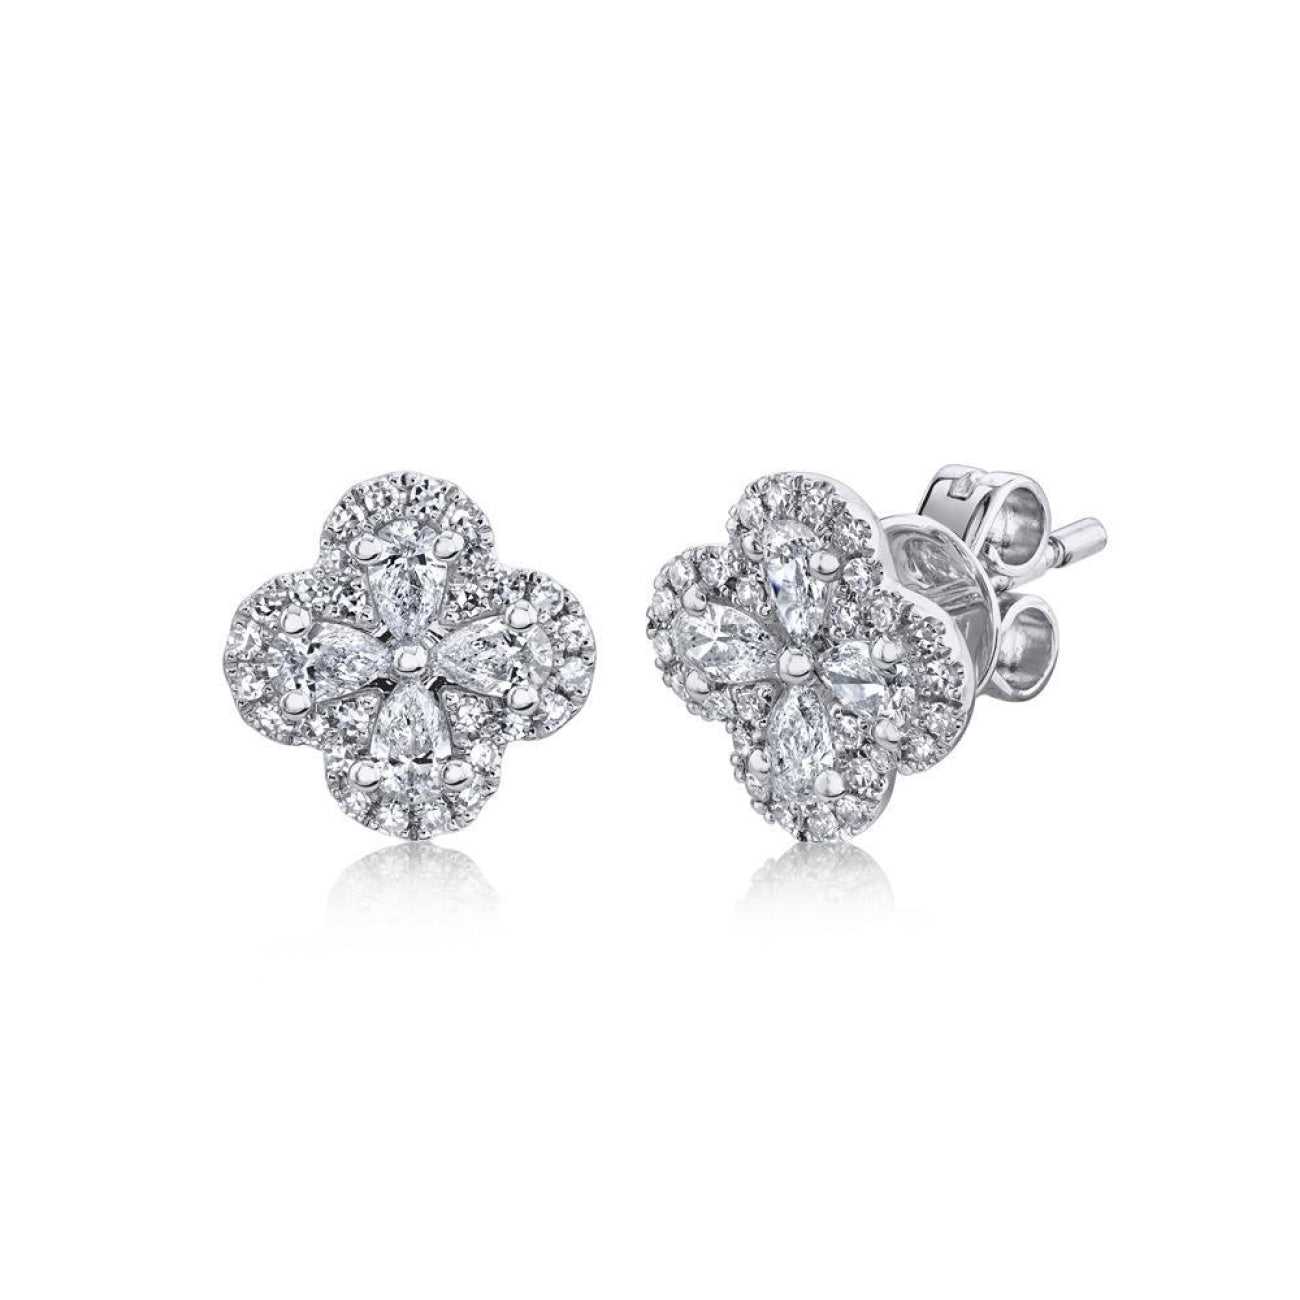 Shy Creation Jewelry - 0.60CT DIAMOND CLOVER STUD EARRING | Manfredi Jewels